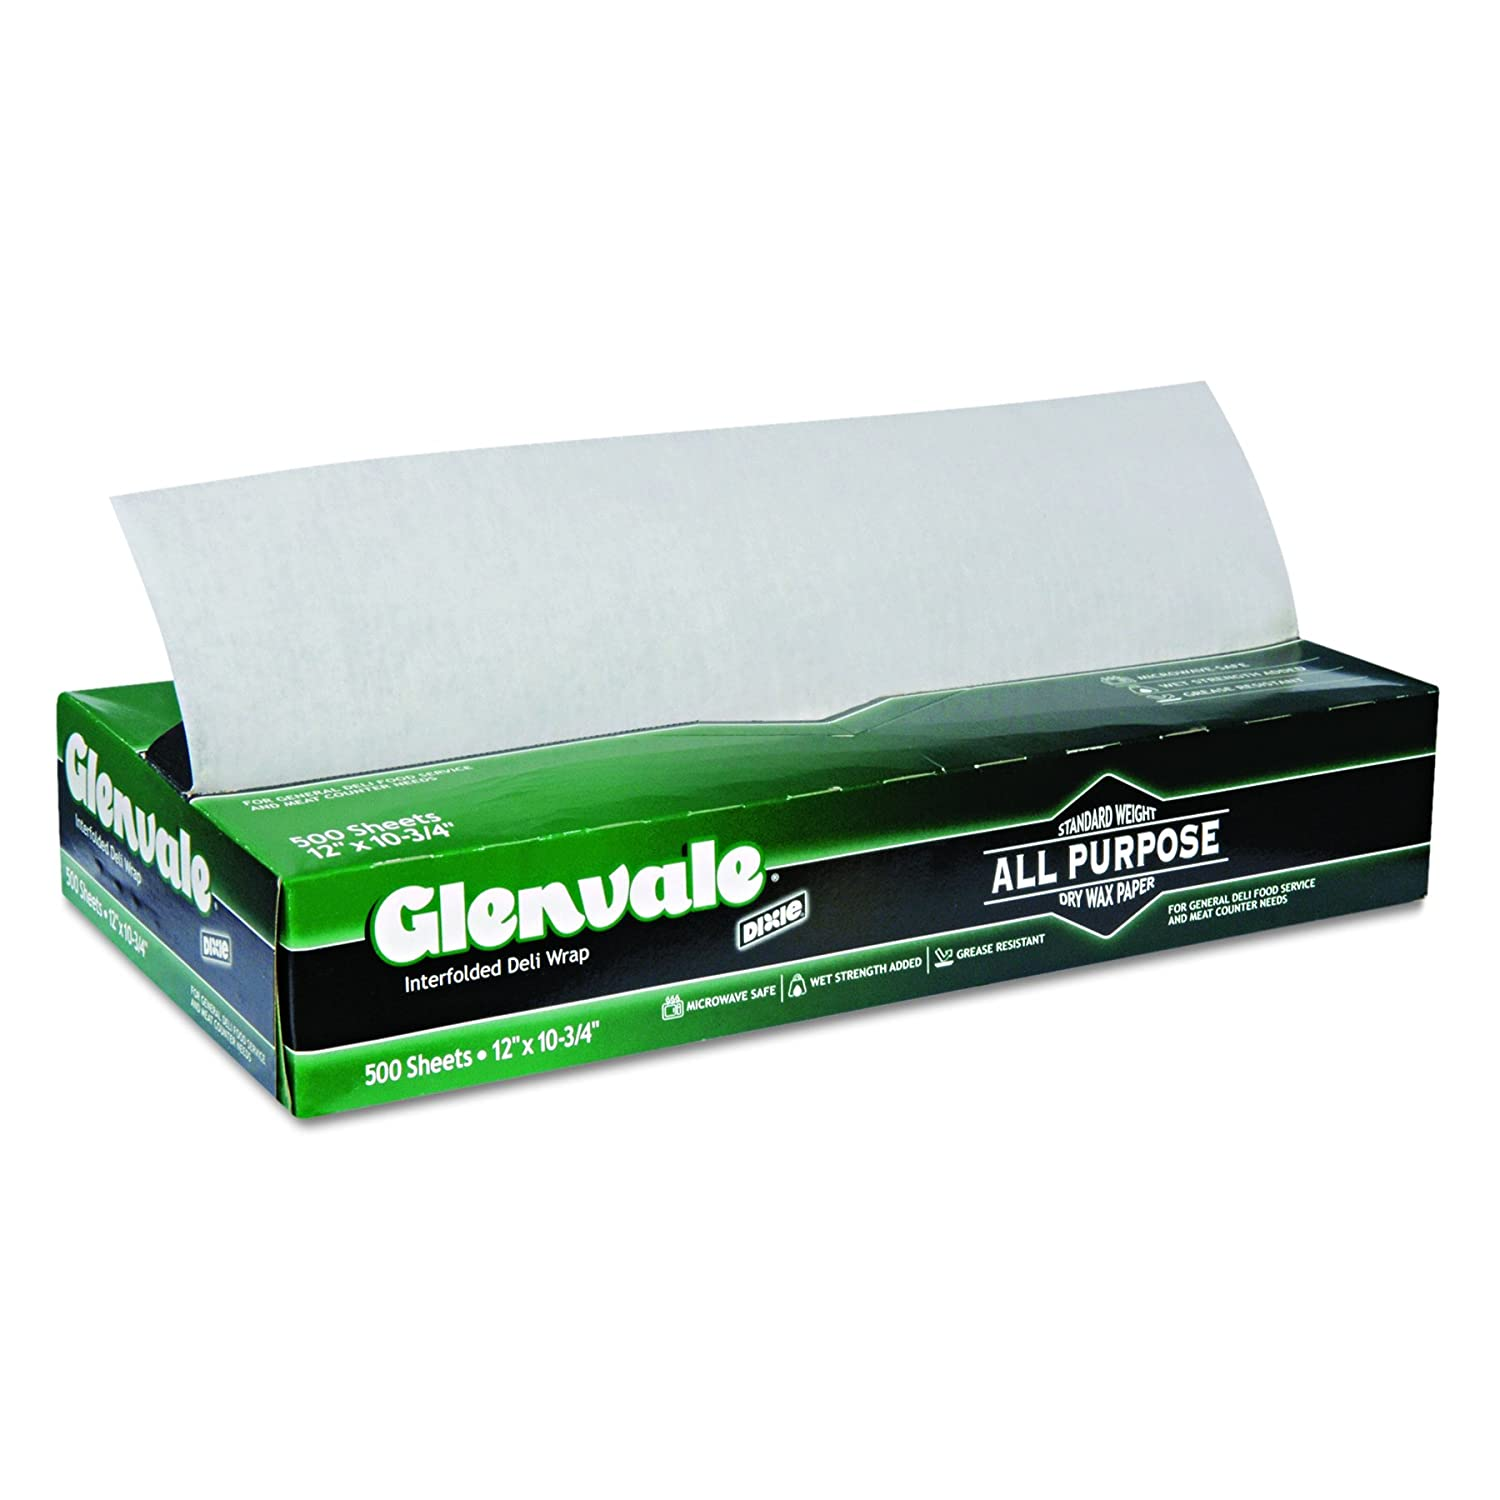 Dixie Glenvale Medium-Weight Interfolded Dry Waxed Deli Paper by GP PRO (Georgia-Pacific), G12, White, 10.75